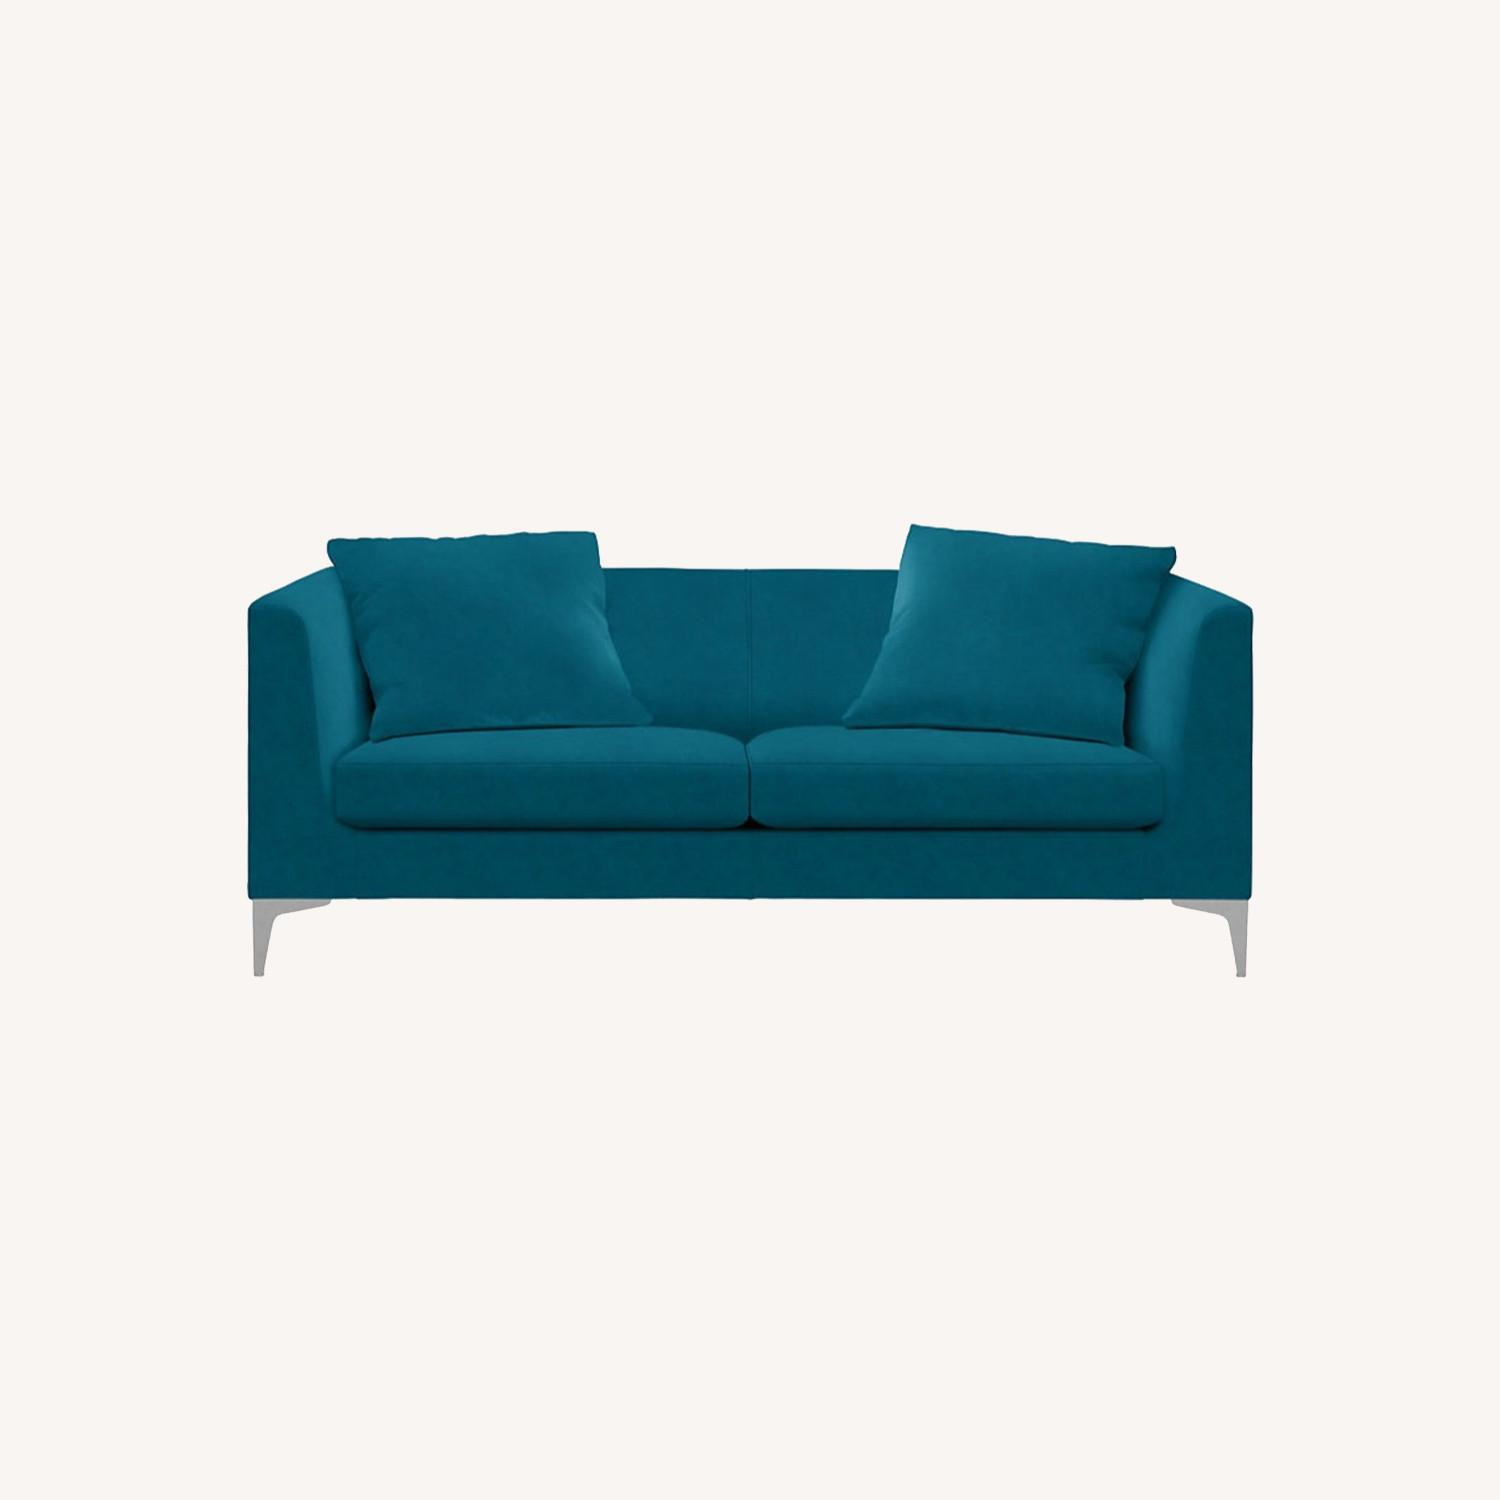 Room & Board Sterling Sofa - image-0